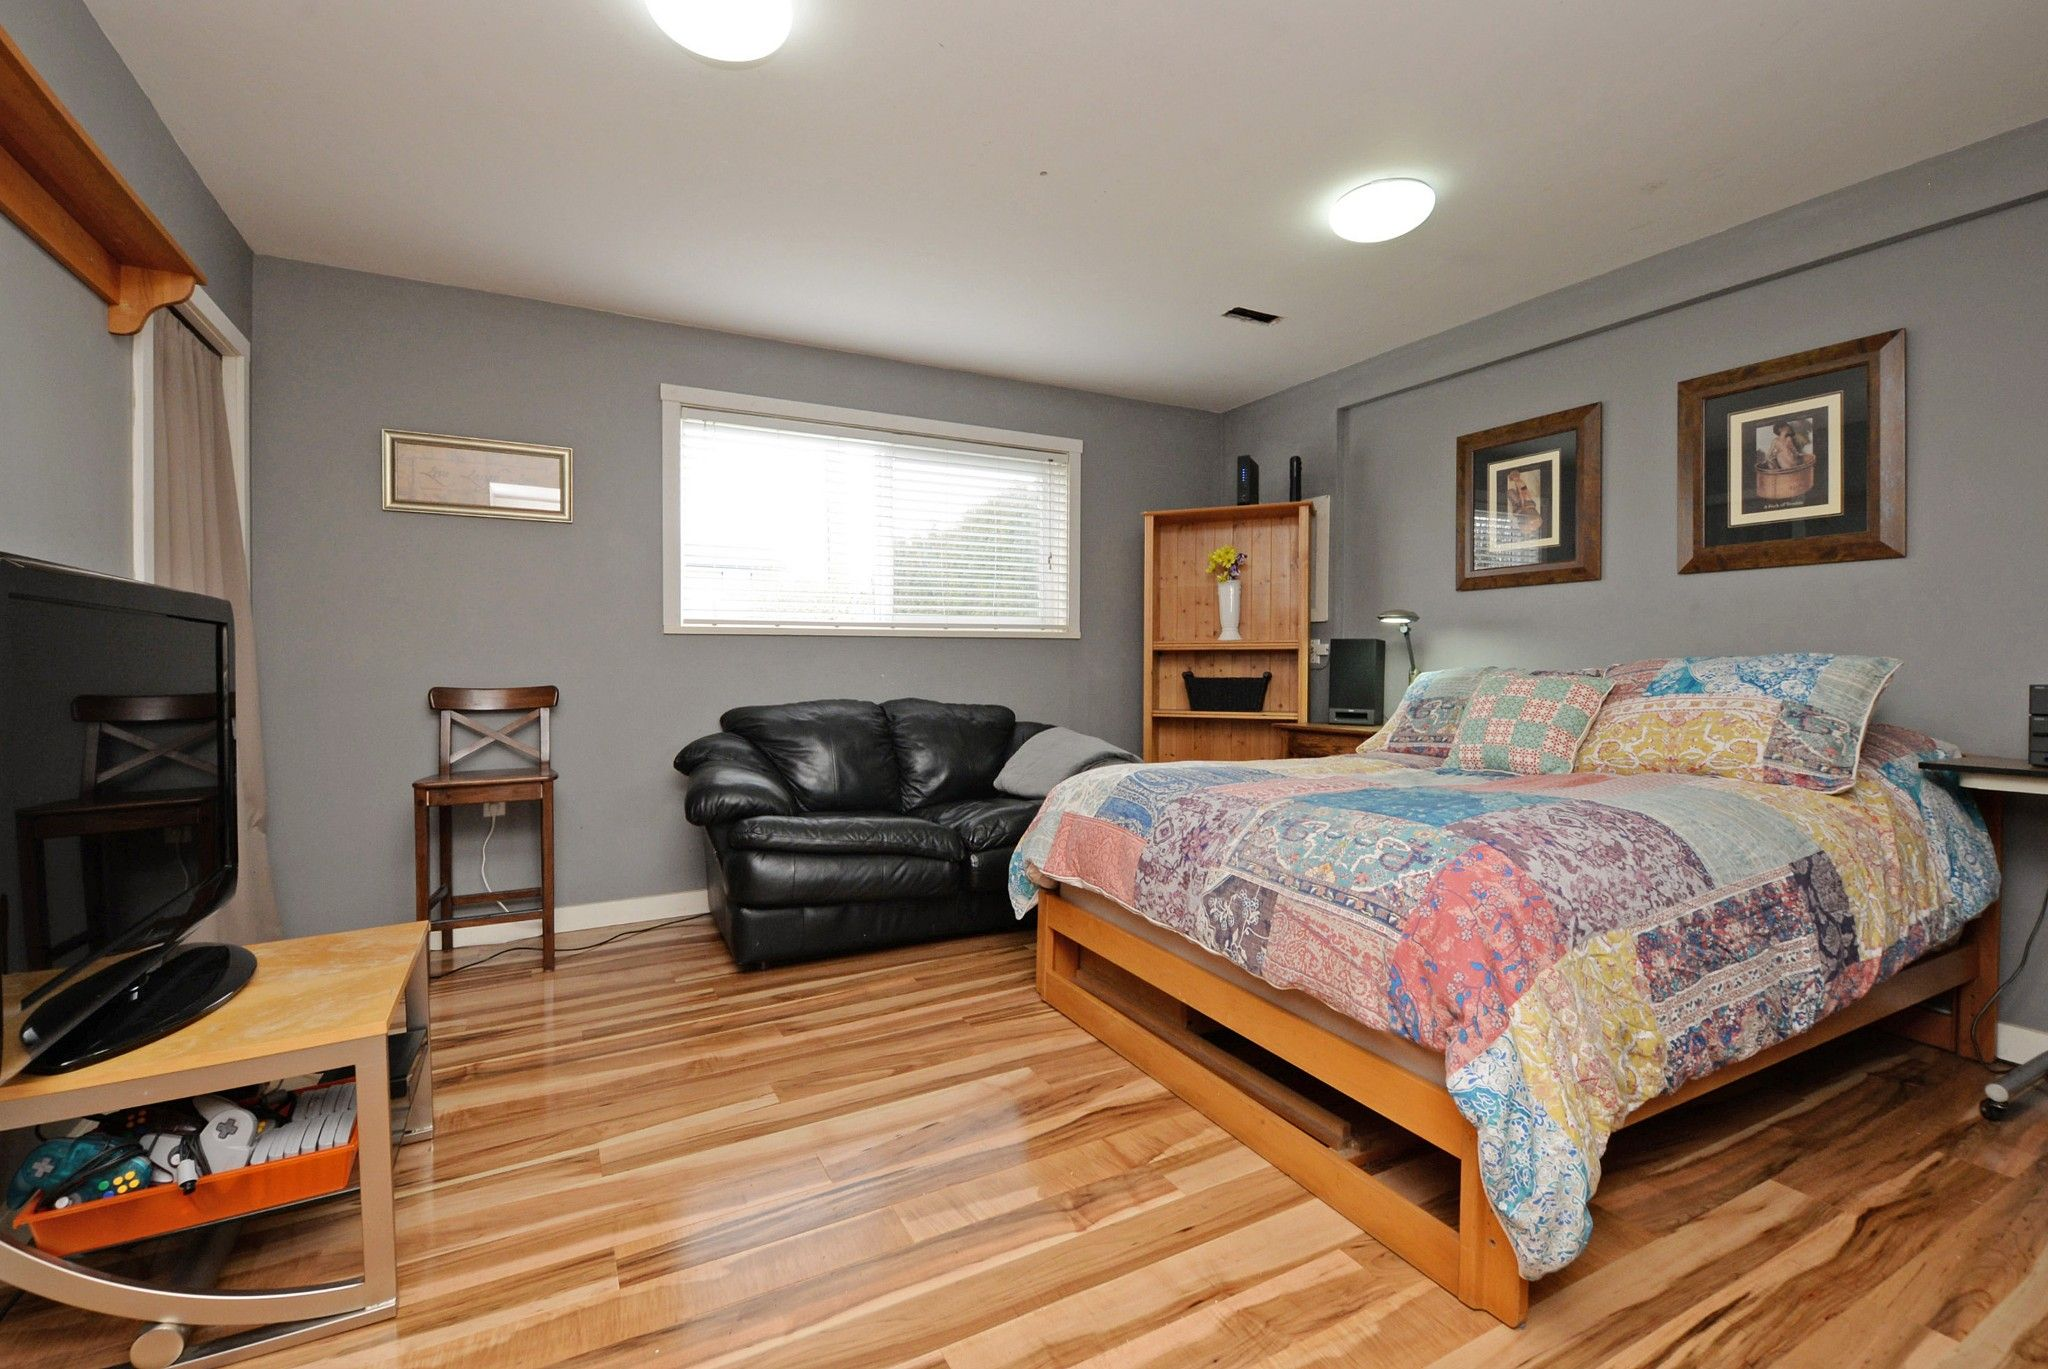 Photo 16: Photos: 5166 44 Avenue in Delta: Ladner Elementary House for sale (Ladner)  : MLS®# R2239309